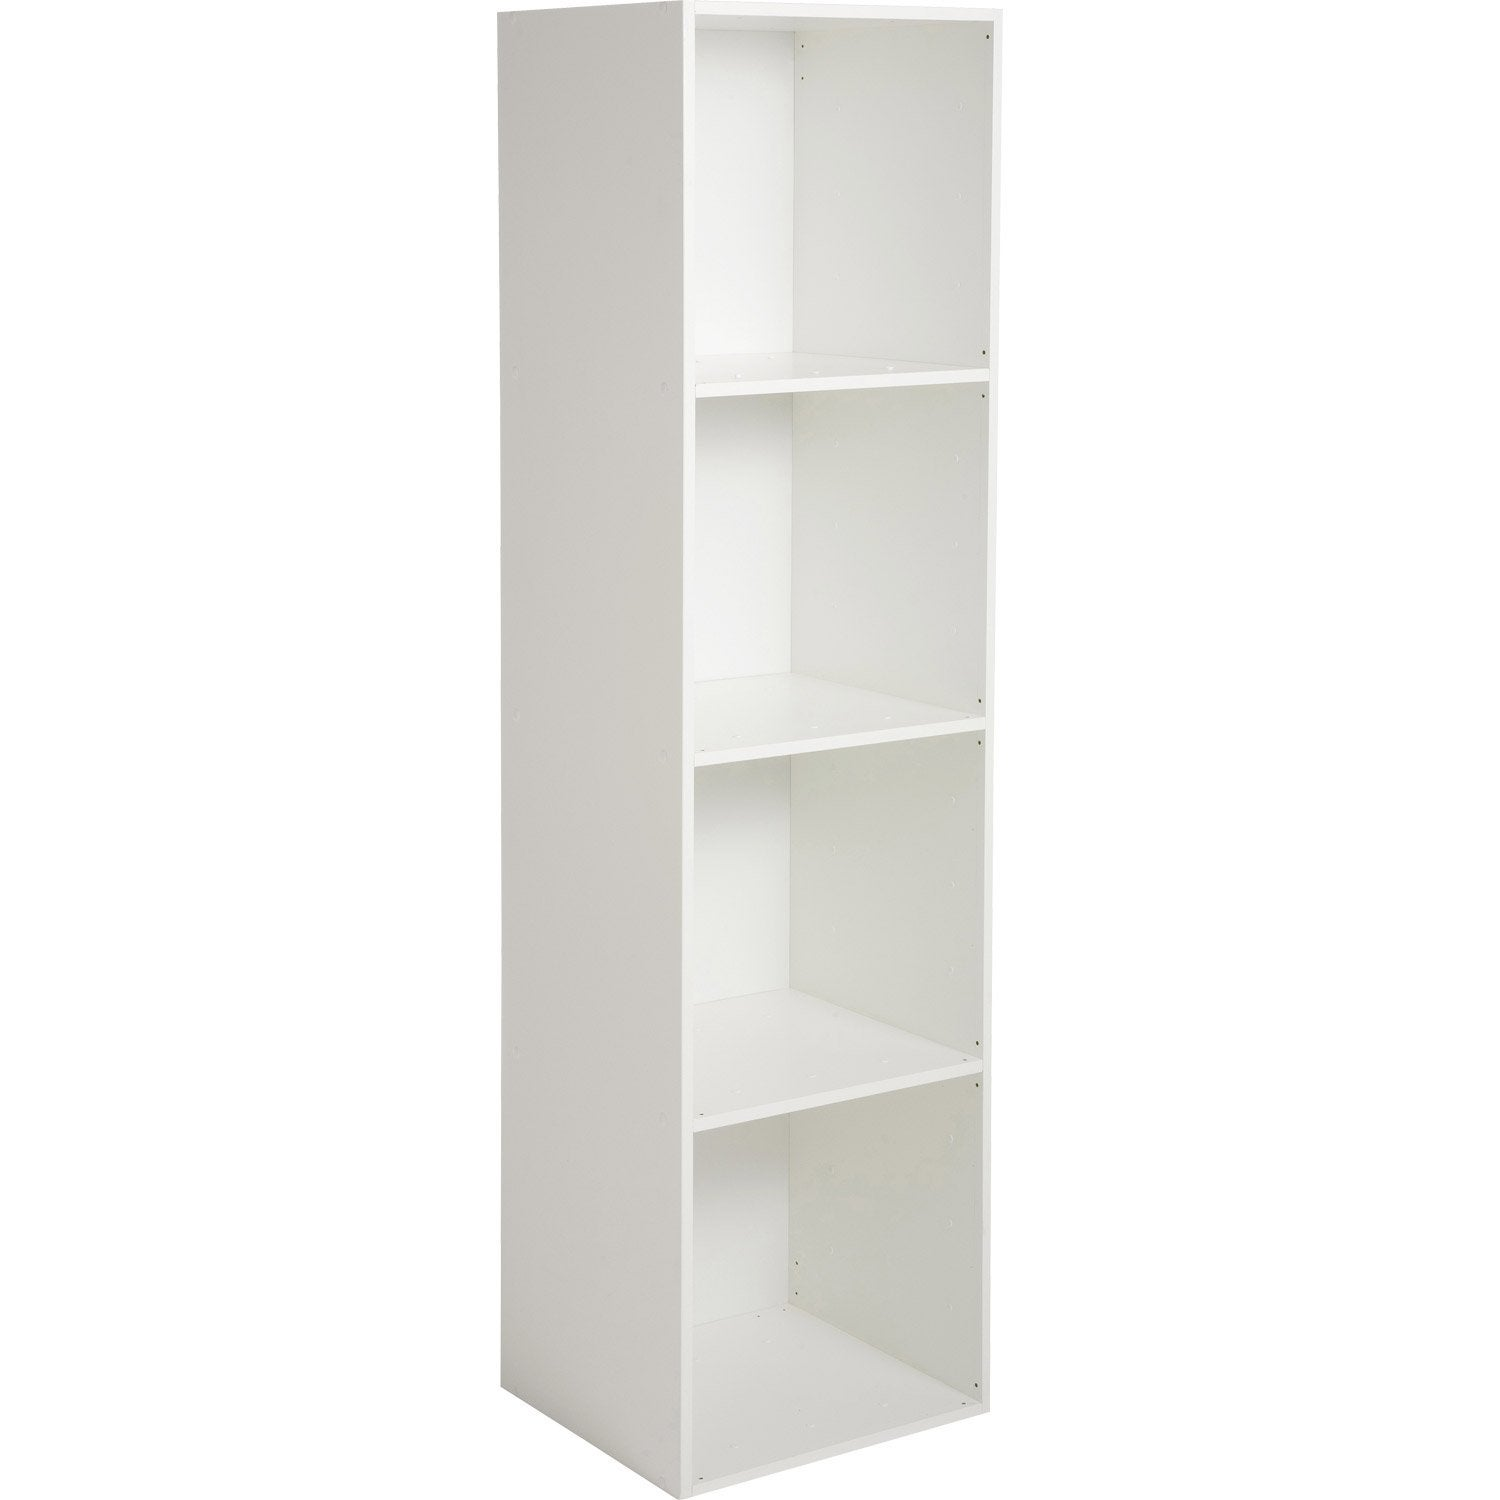 Etag re 4 cases multikaz blanc x x - Etagere a chaussure leroy merlin ...